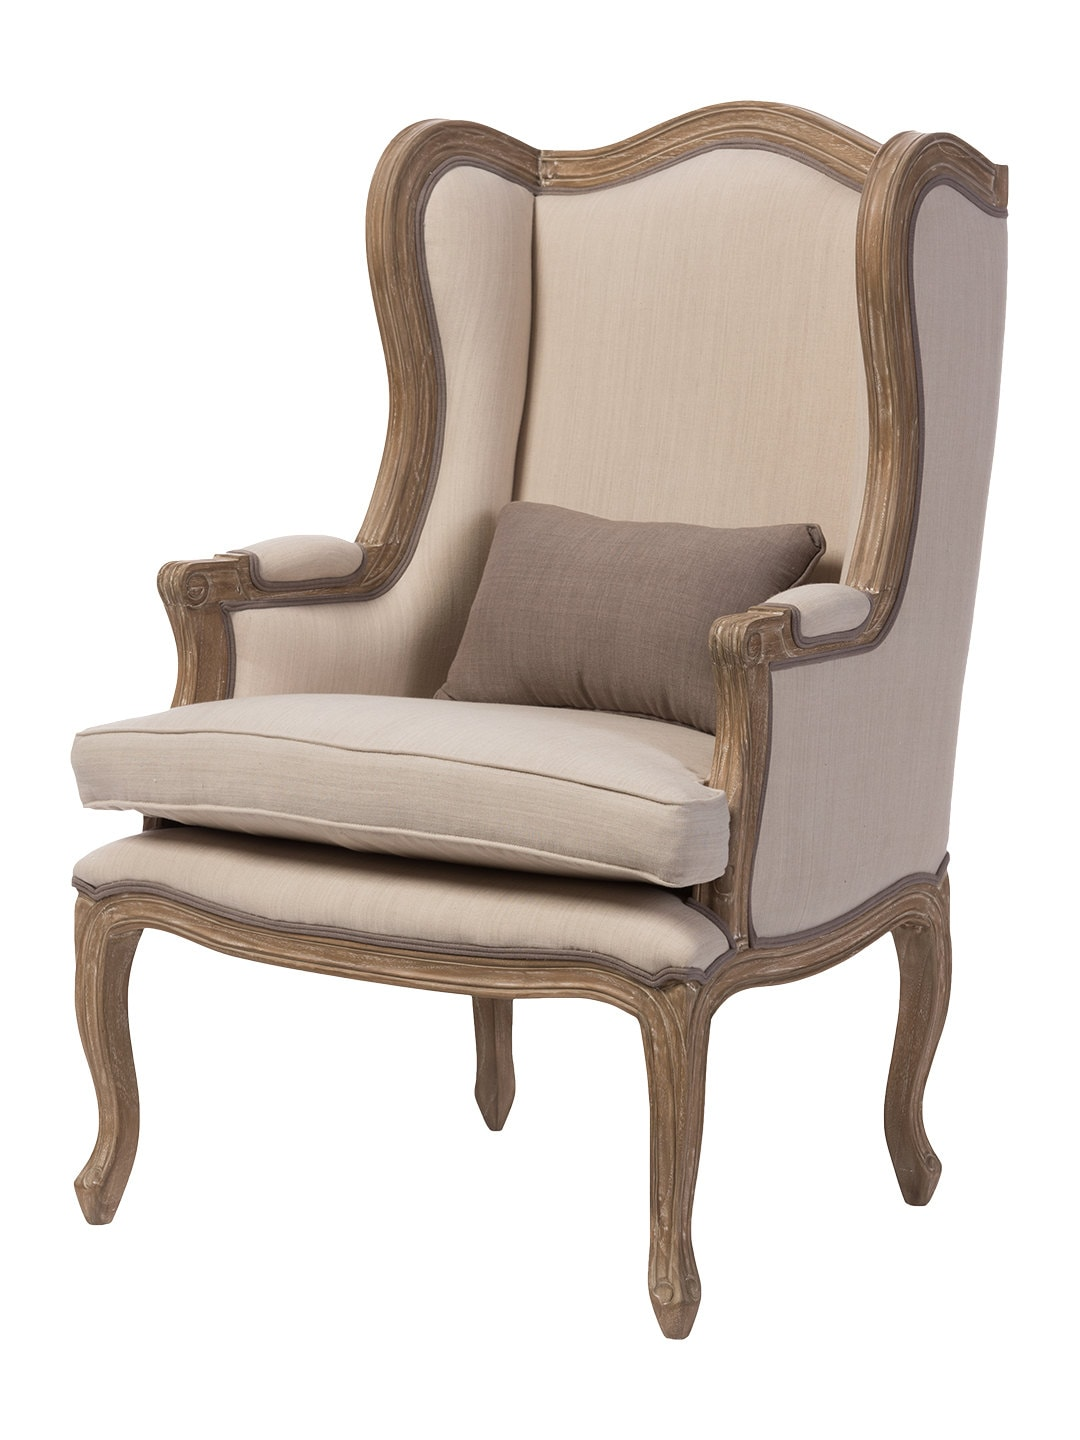 Wayfair Oreille Chair 484